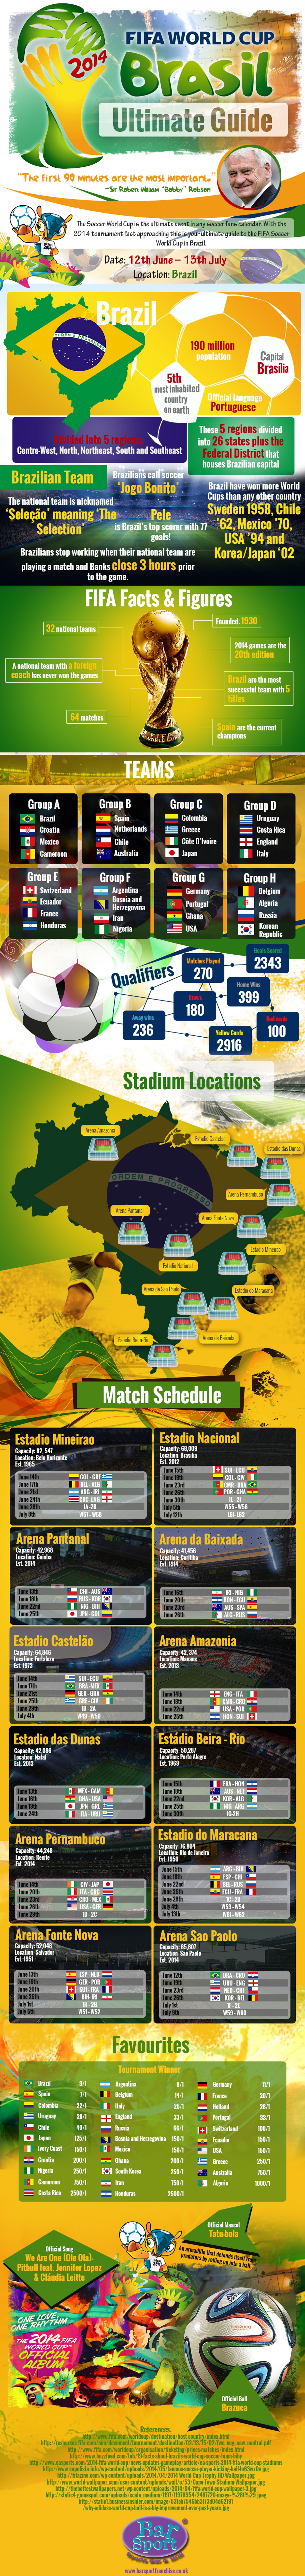 FIFA World Cup 2014 – The Ultimate Guide Infographic